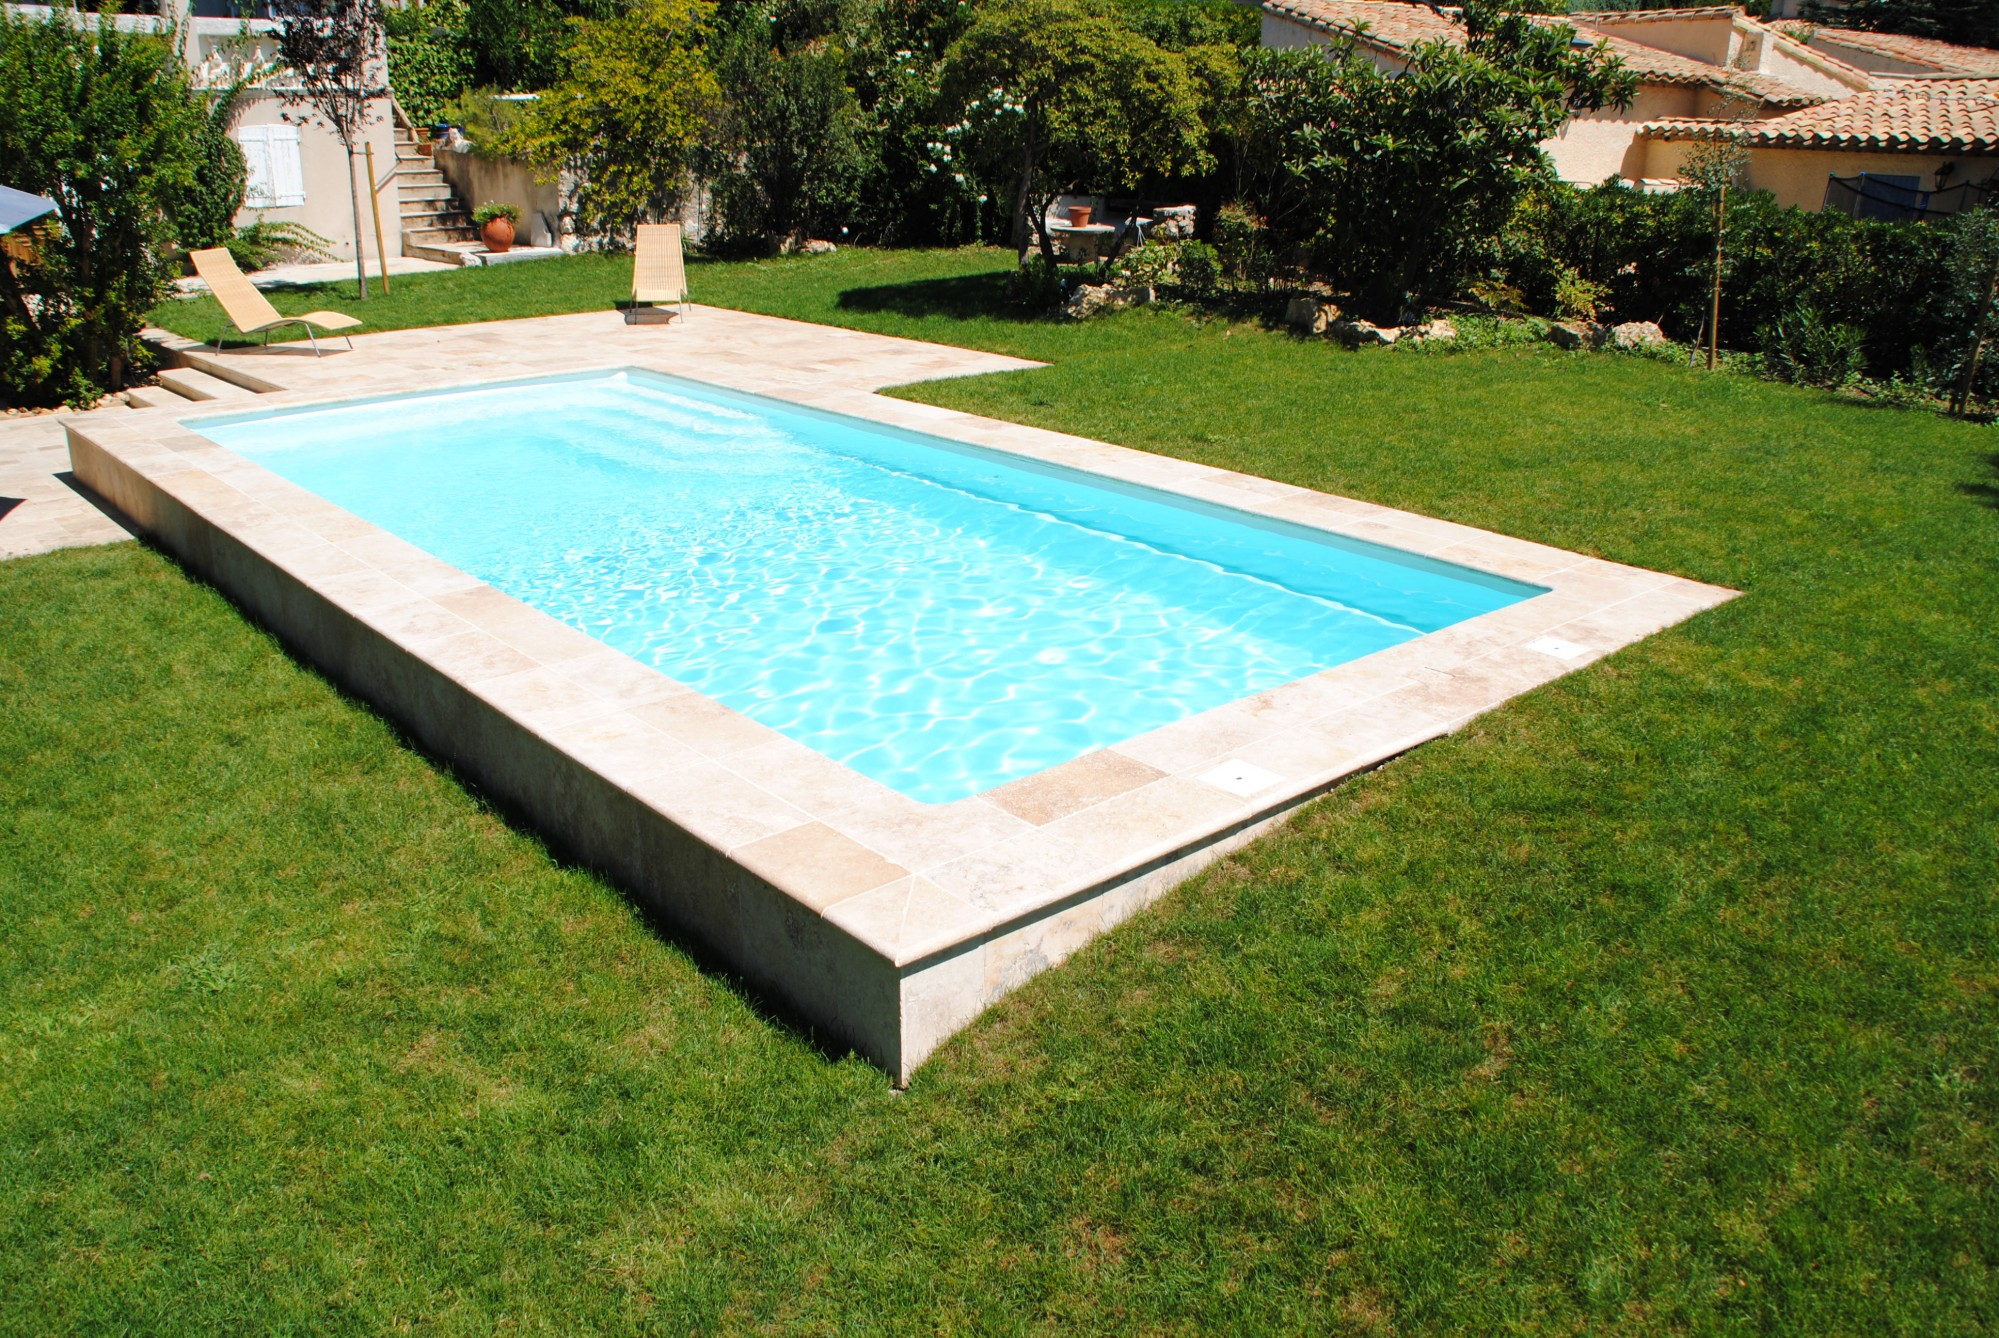 Piscines coque polyester pas chere piscine polyester for Piscine encastrable pas cher